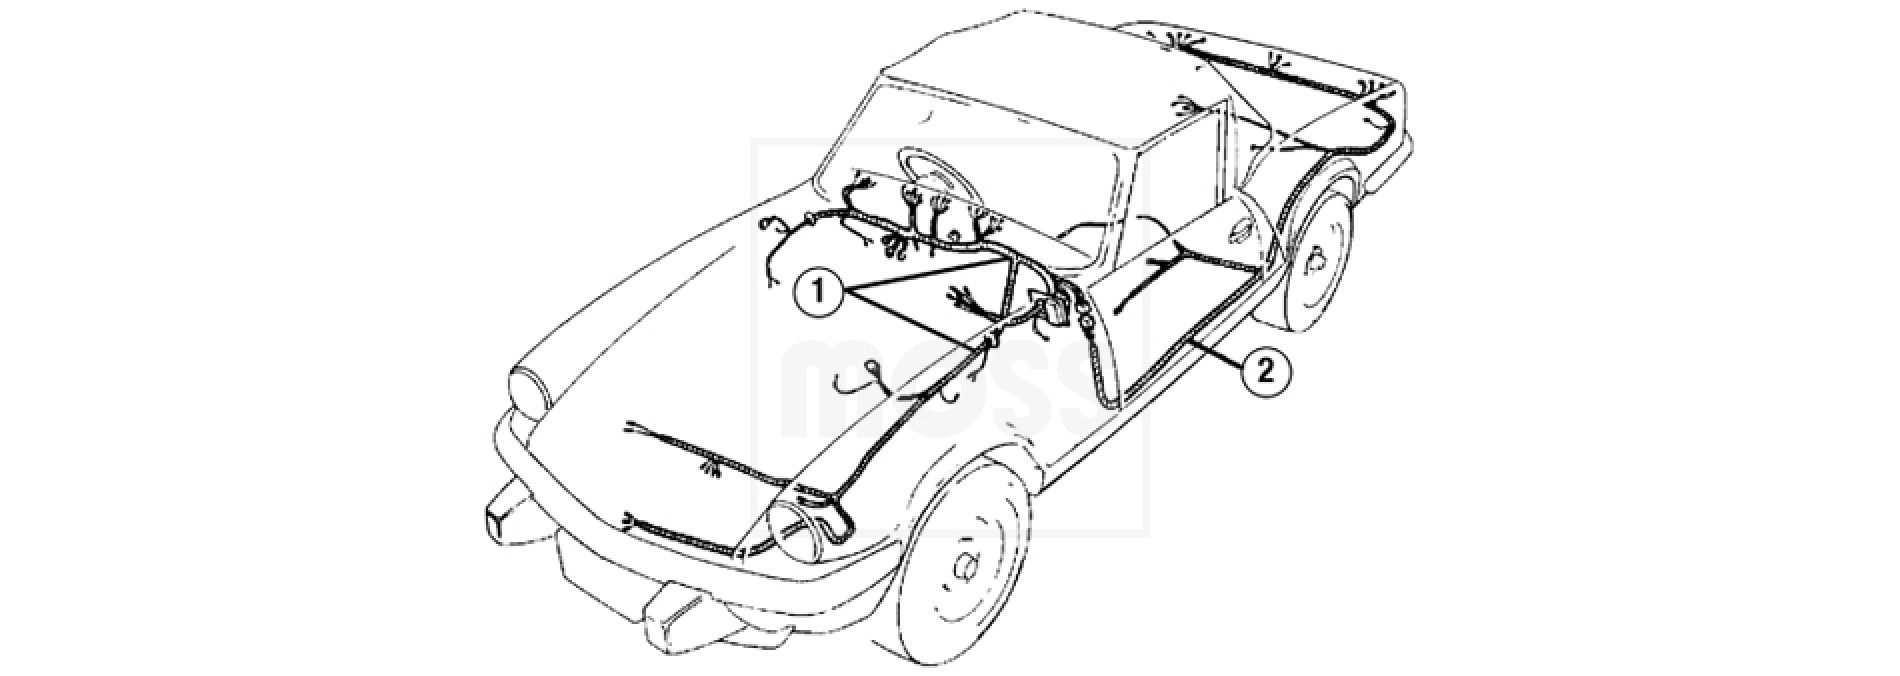 Wiring harnesses spi 16 16 01 wiring harnesseshtml austin healey 3000 wiring diagram austin healey 3000 wiring diagram